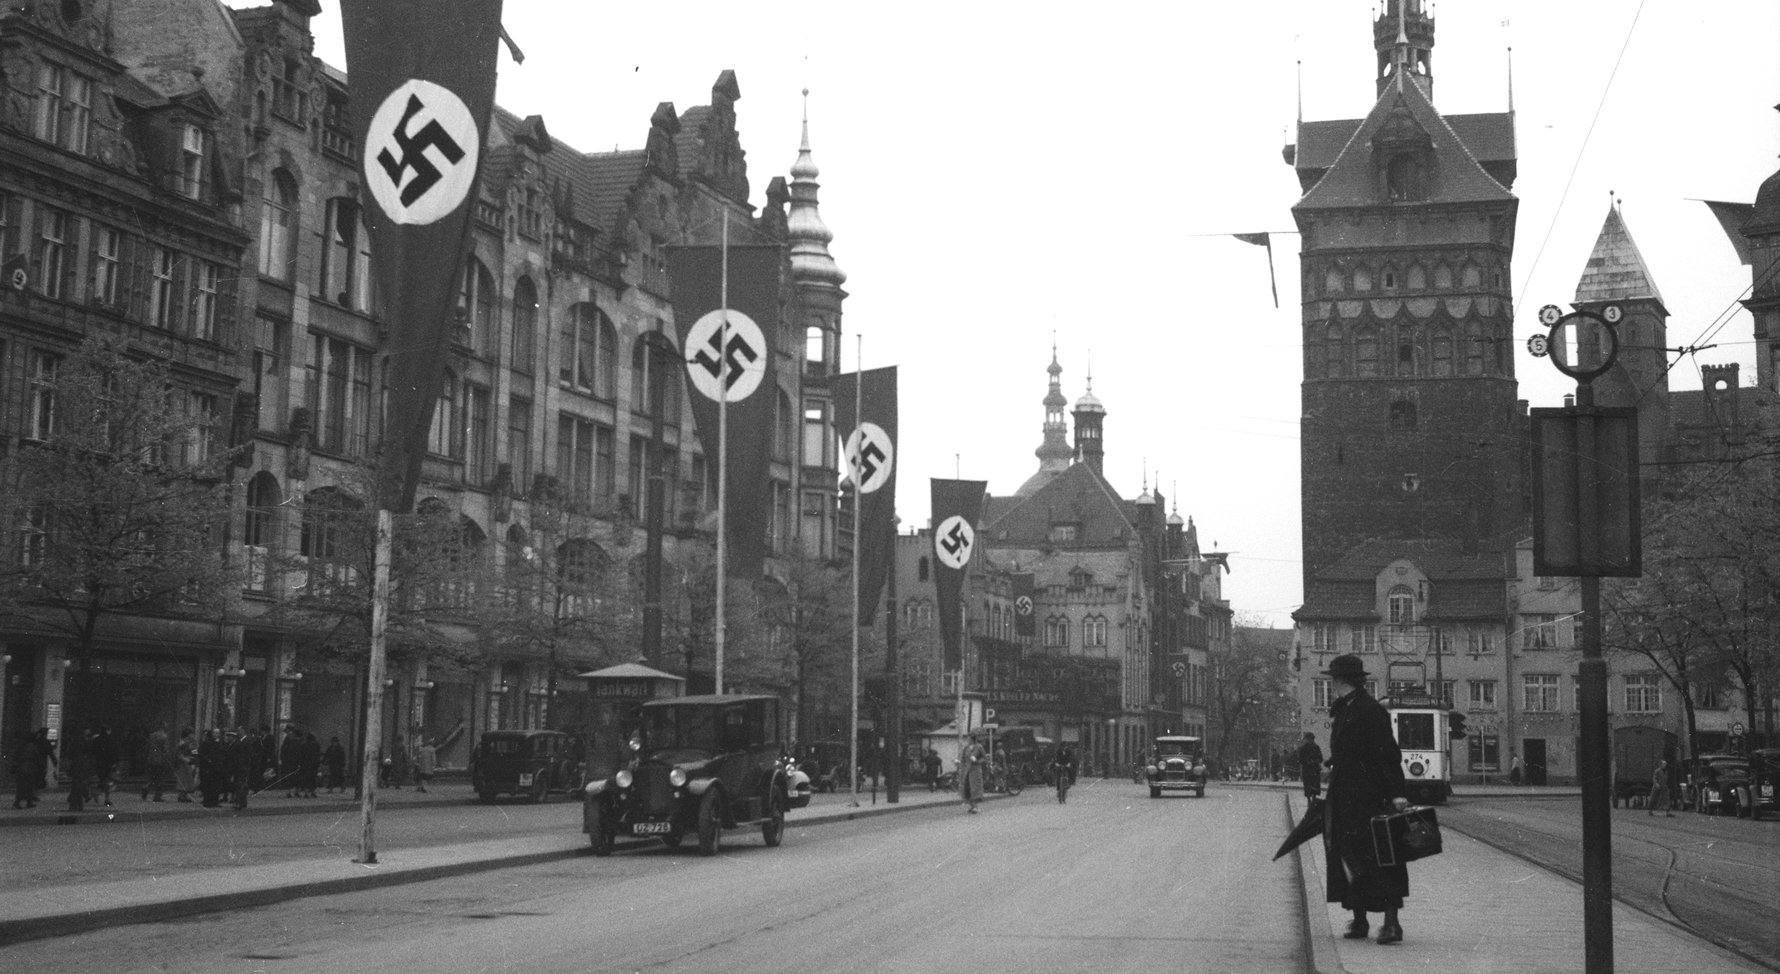 Swatstikas flying in Nazi-dominated Danzig in 1937